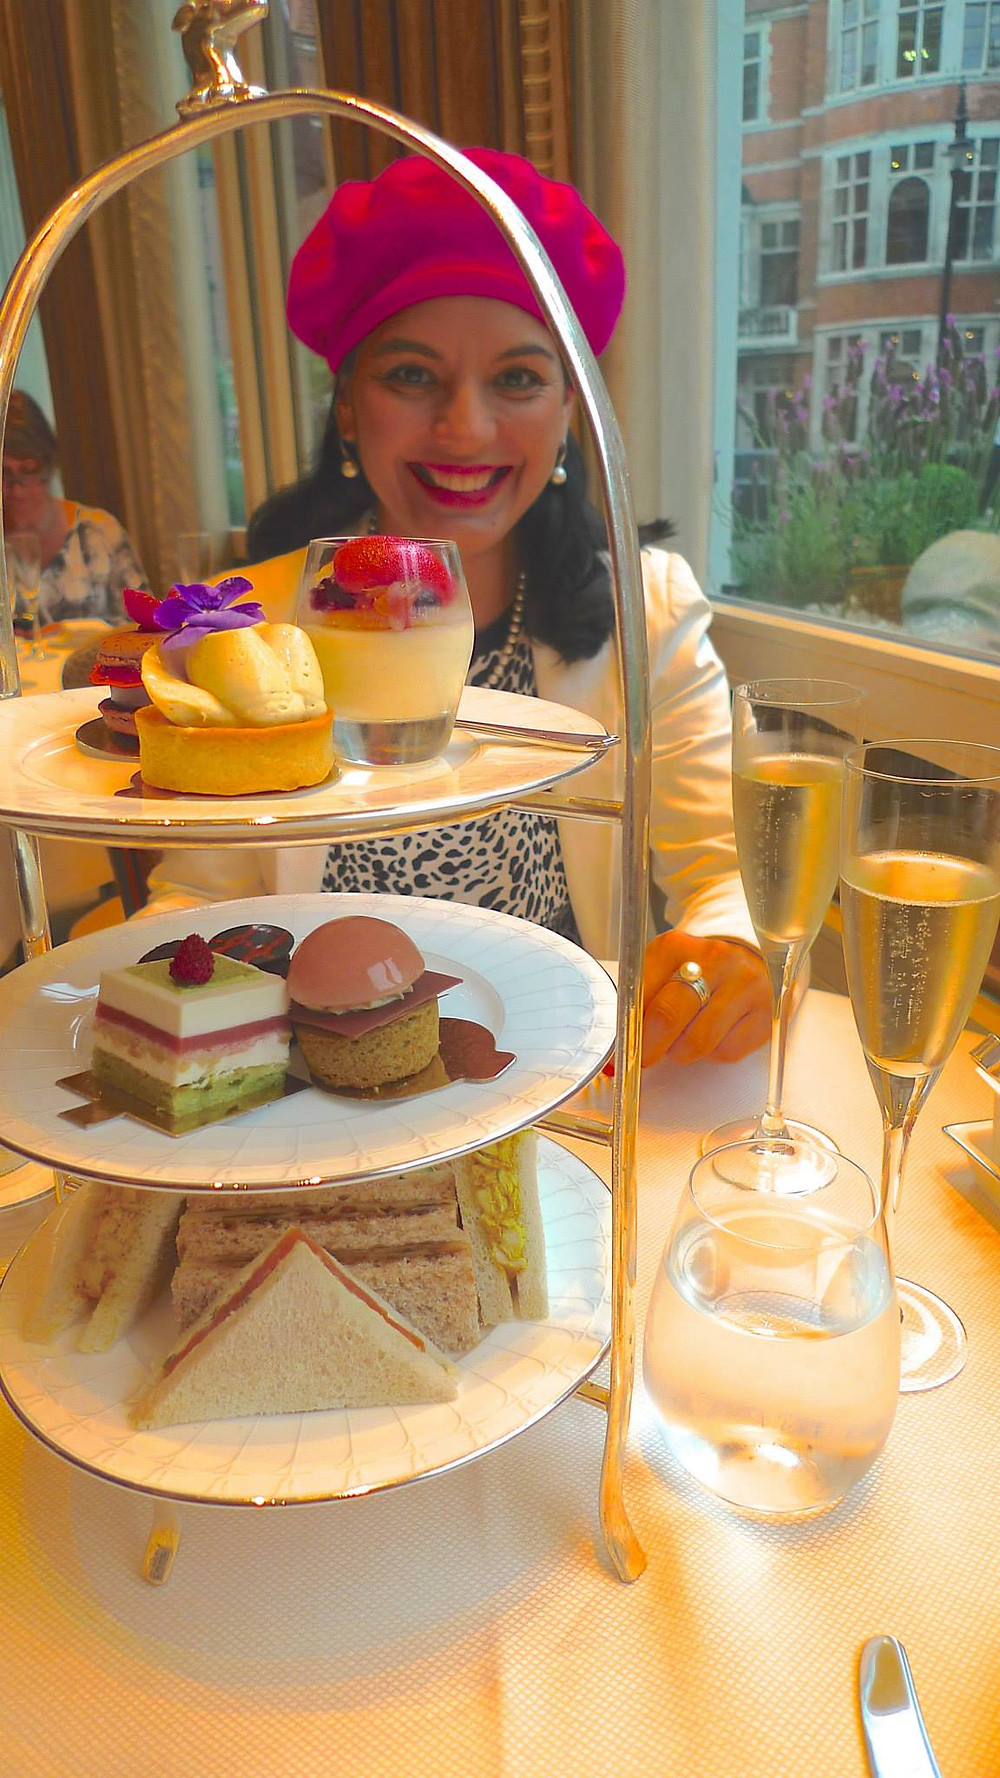 Afternoon Tea at The Connaught Hotel in Mayfair, London